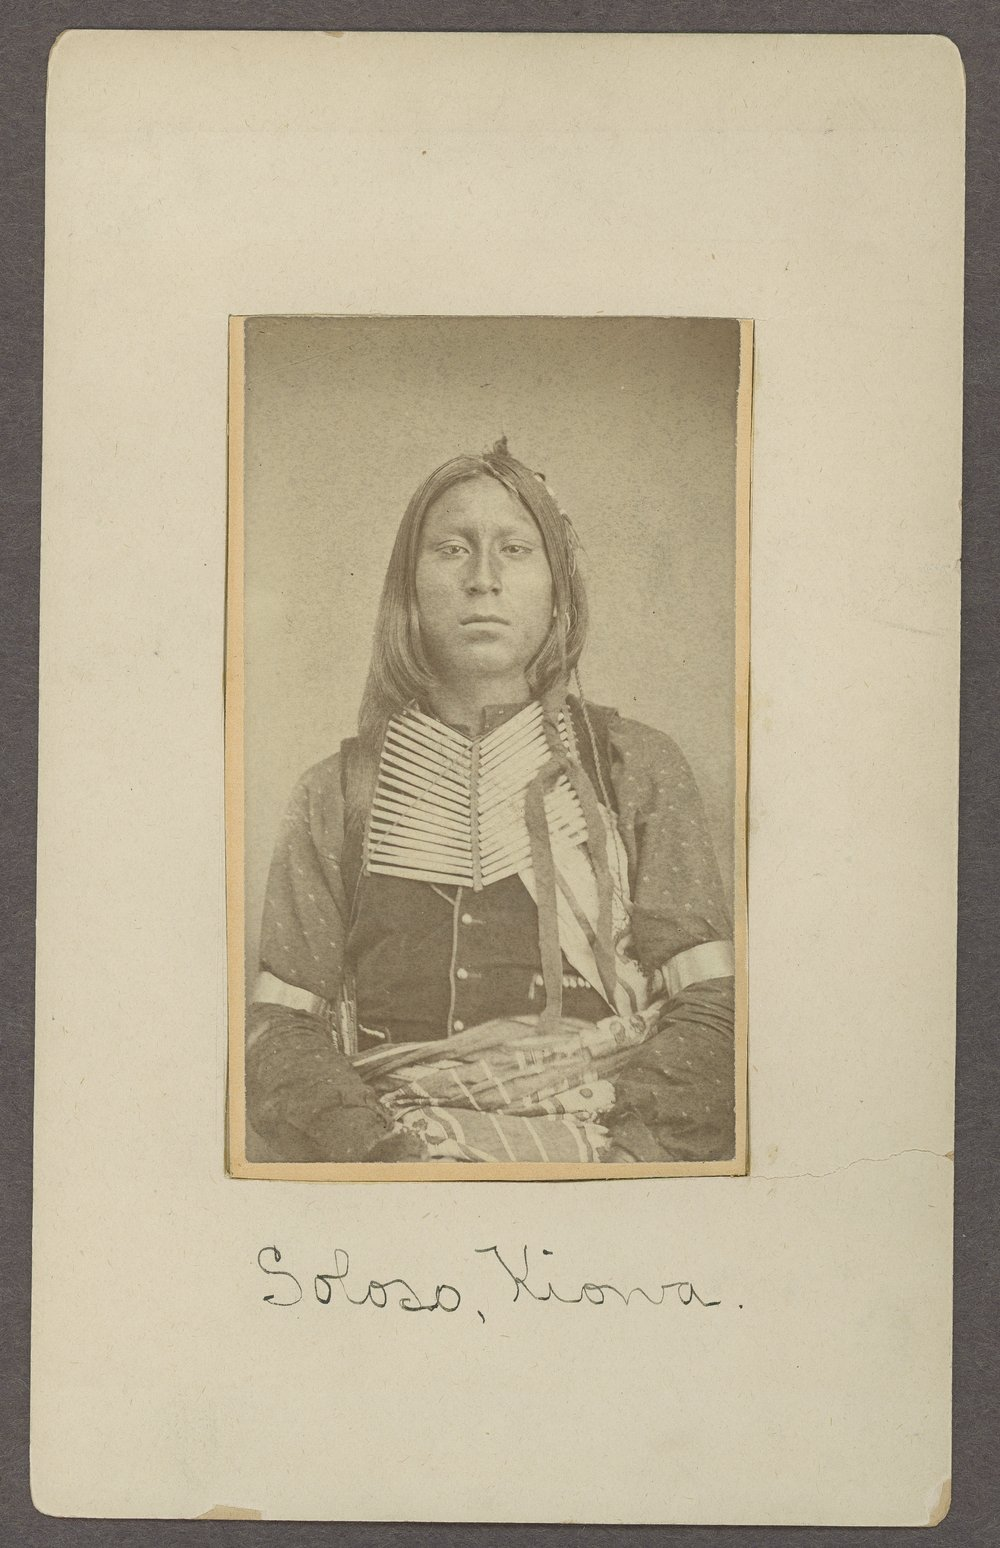 Soloso, son of Satanta, in Indian Territory - 1